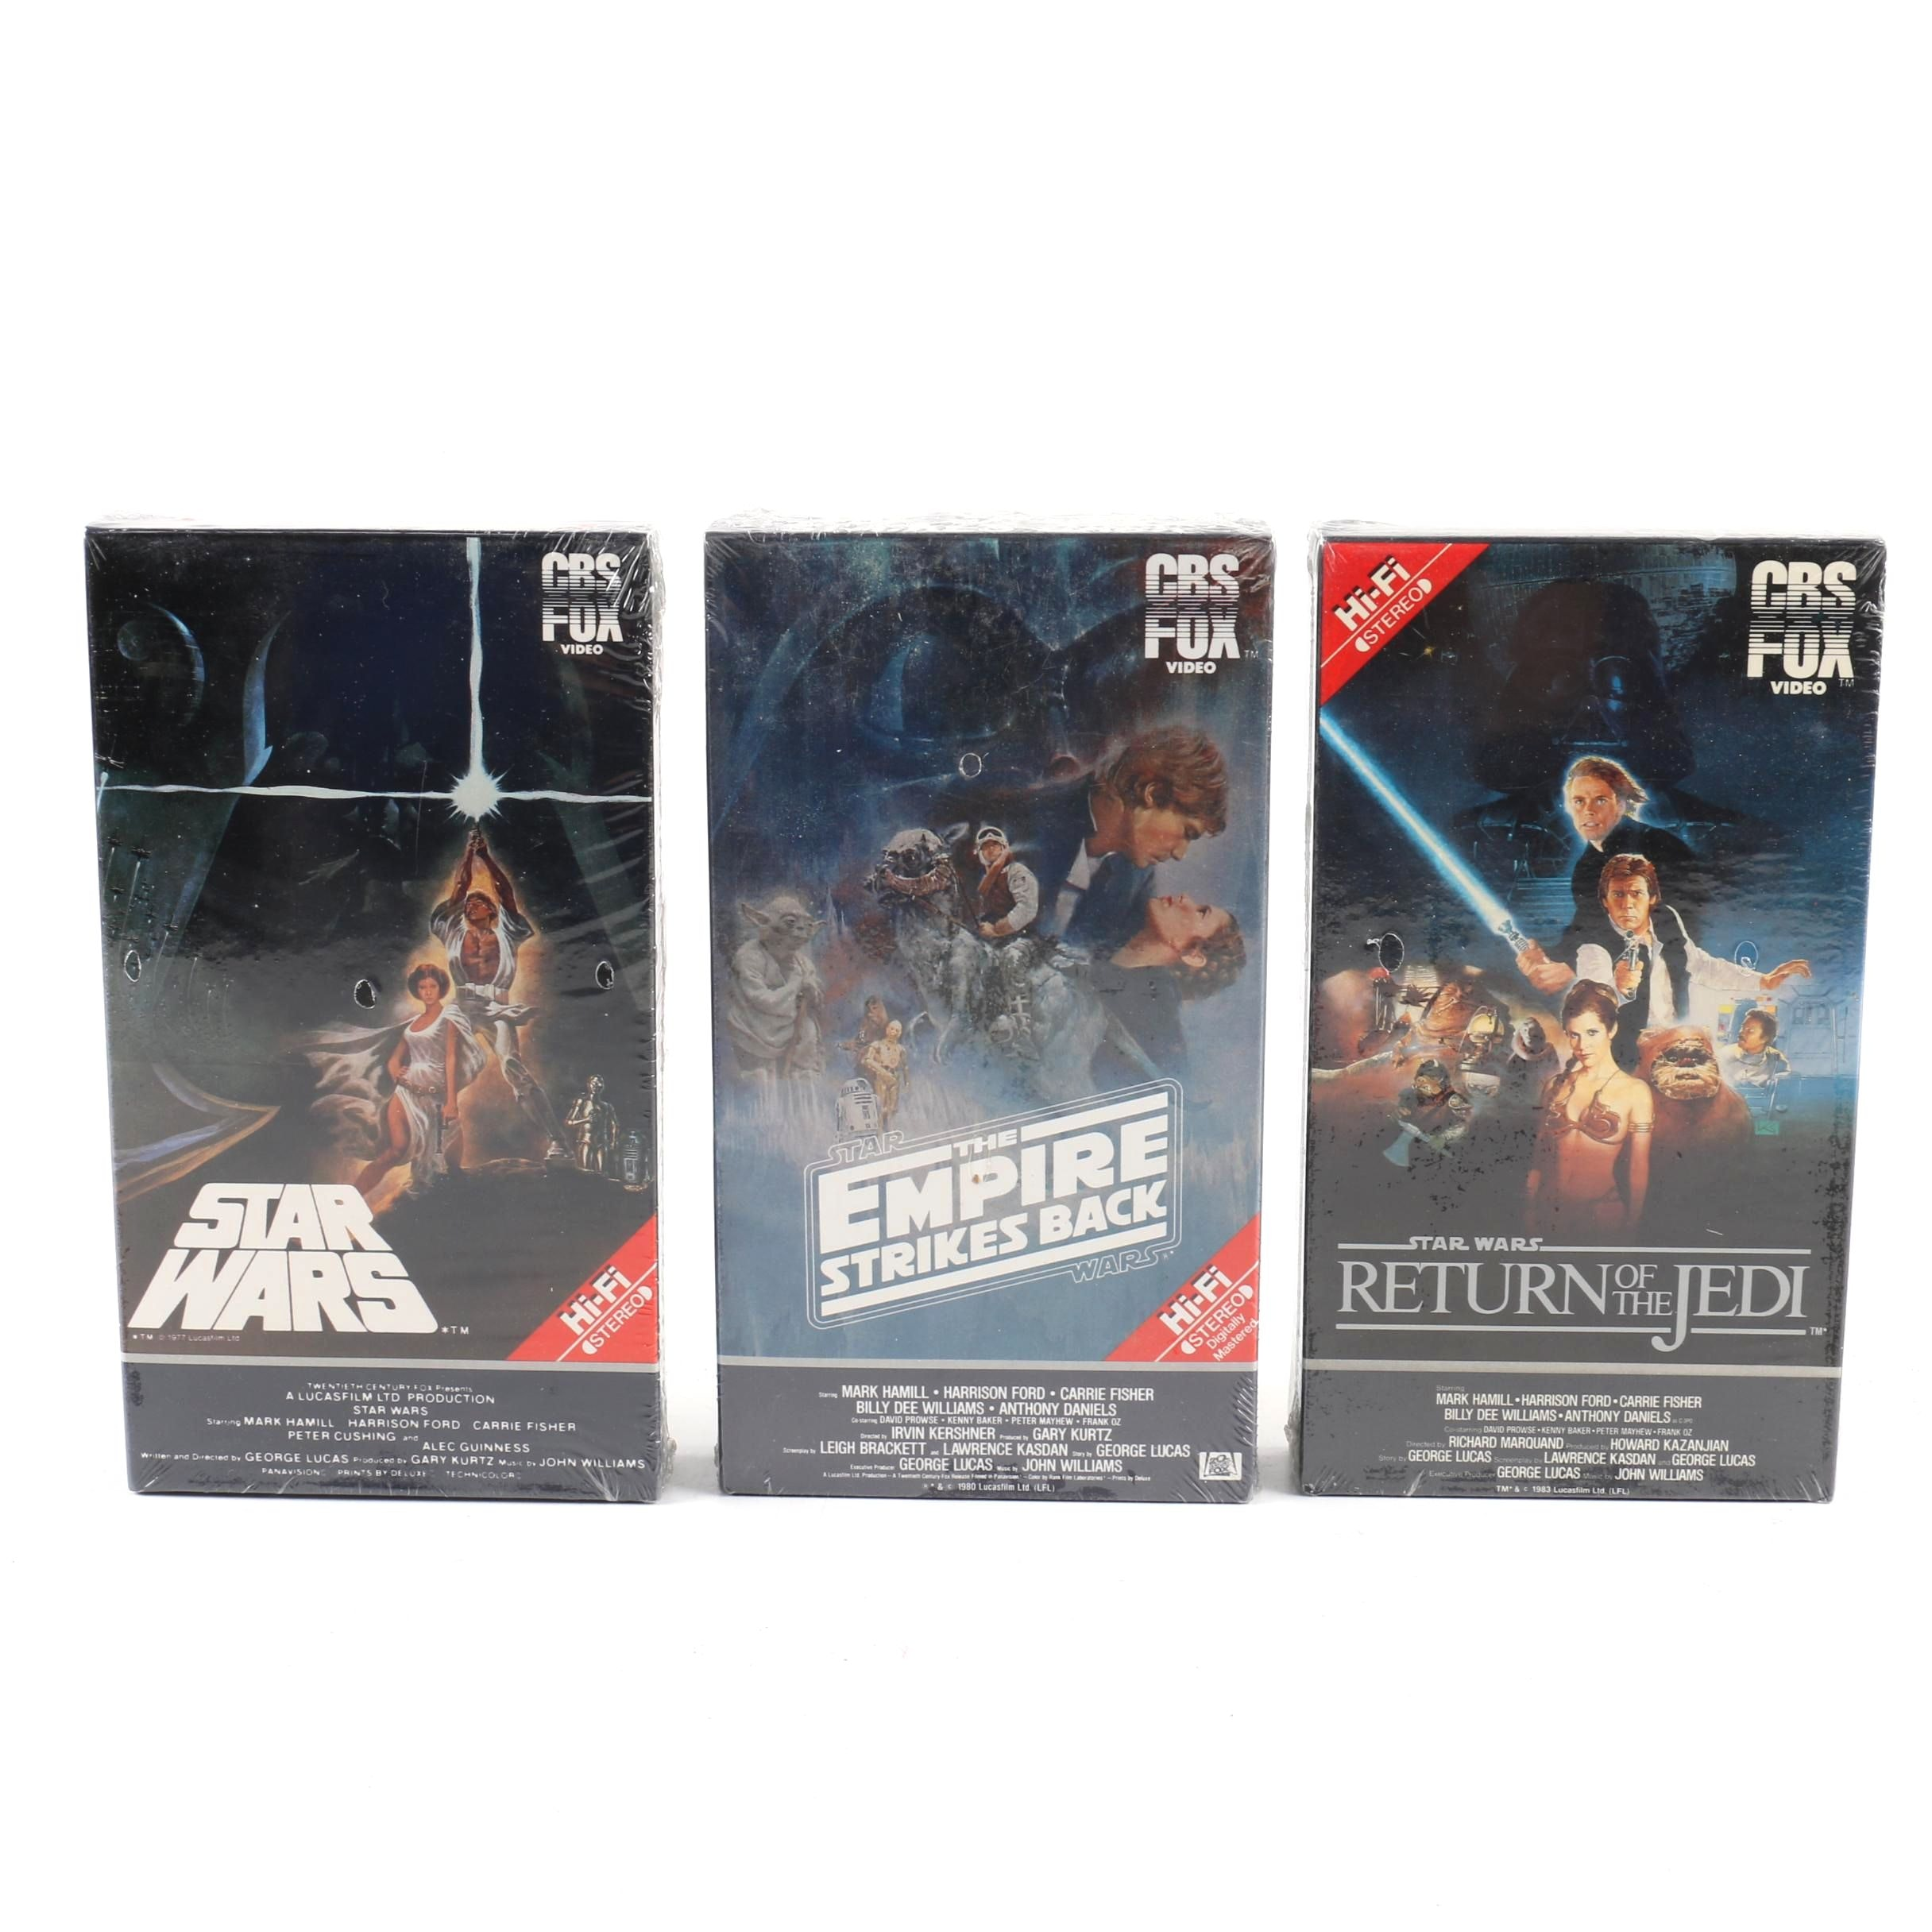 CBS/FOX Video Star Wars Original Trilogy Betamax Cassettes